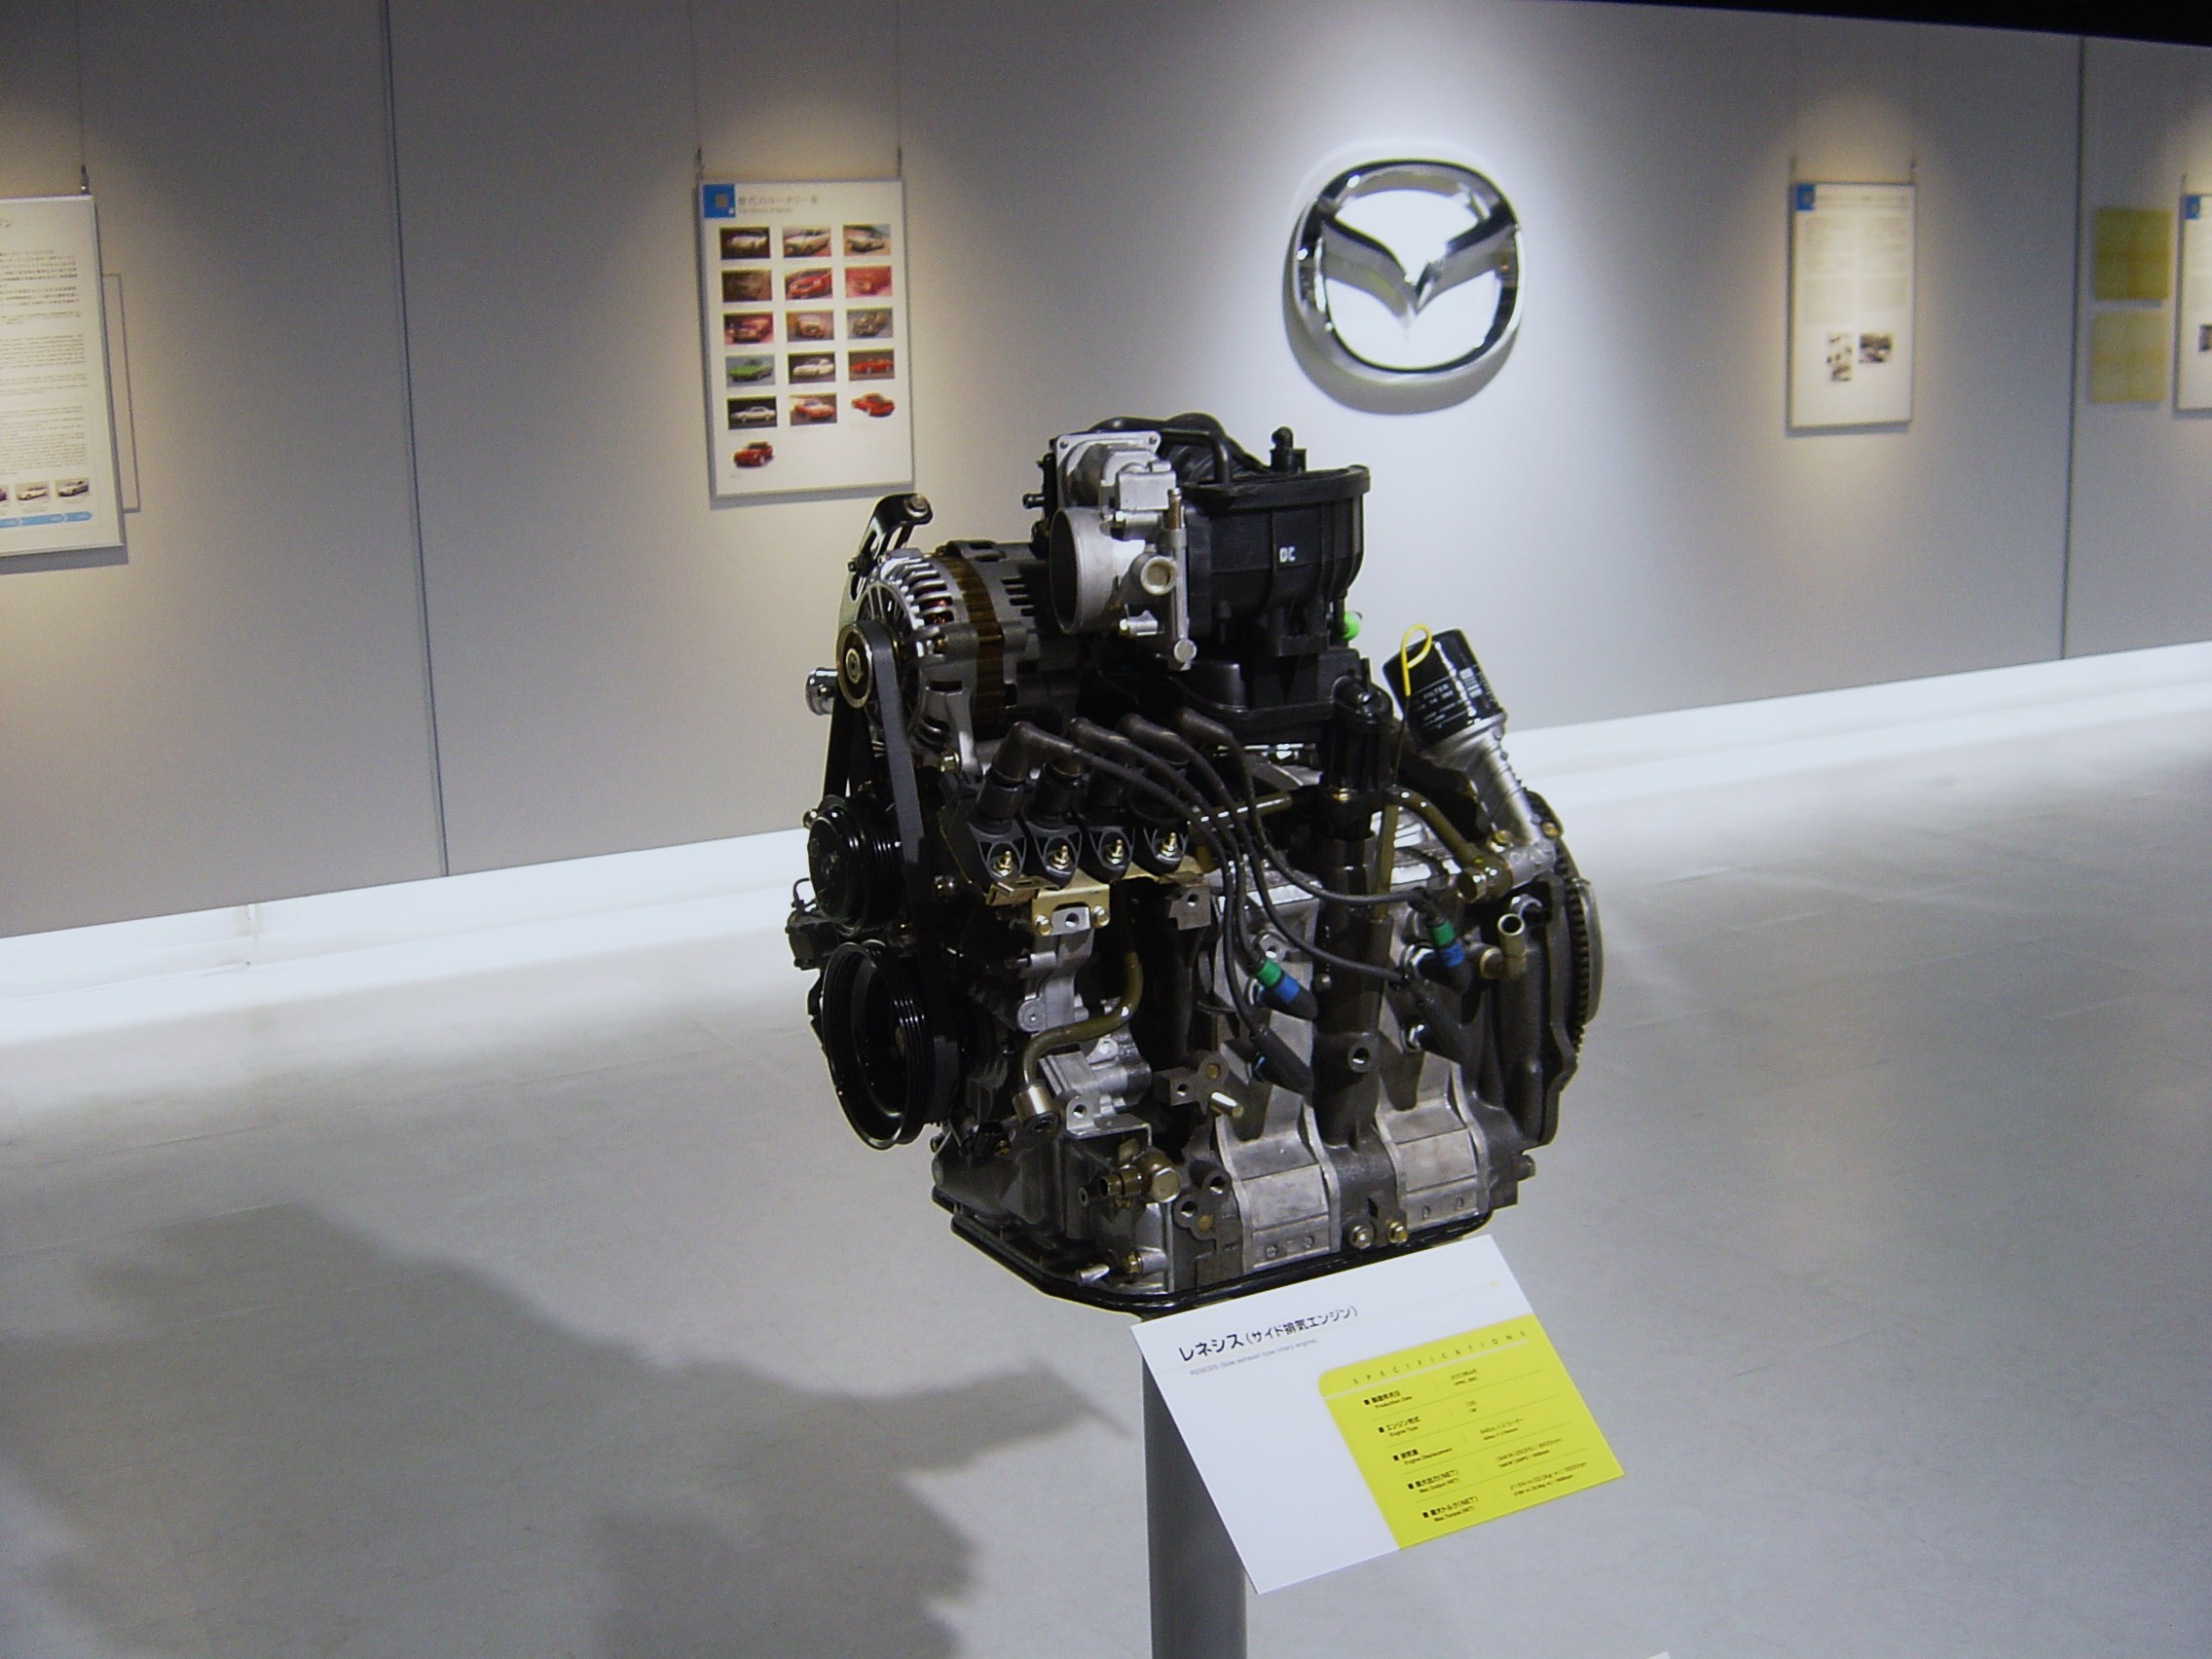 mazda rotary engine jpg essay forum scholarship thesis of stories that changed america